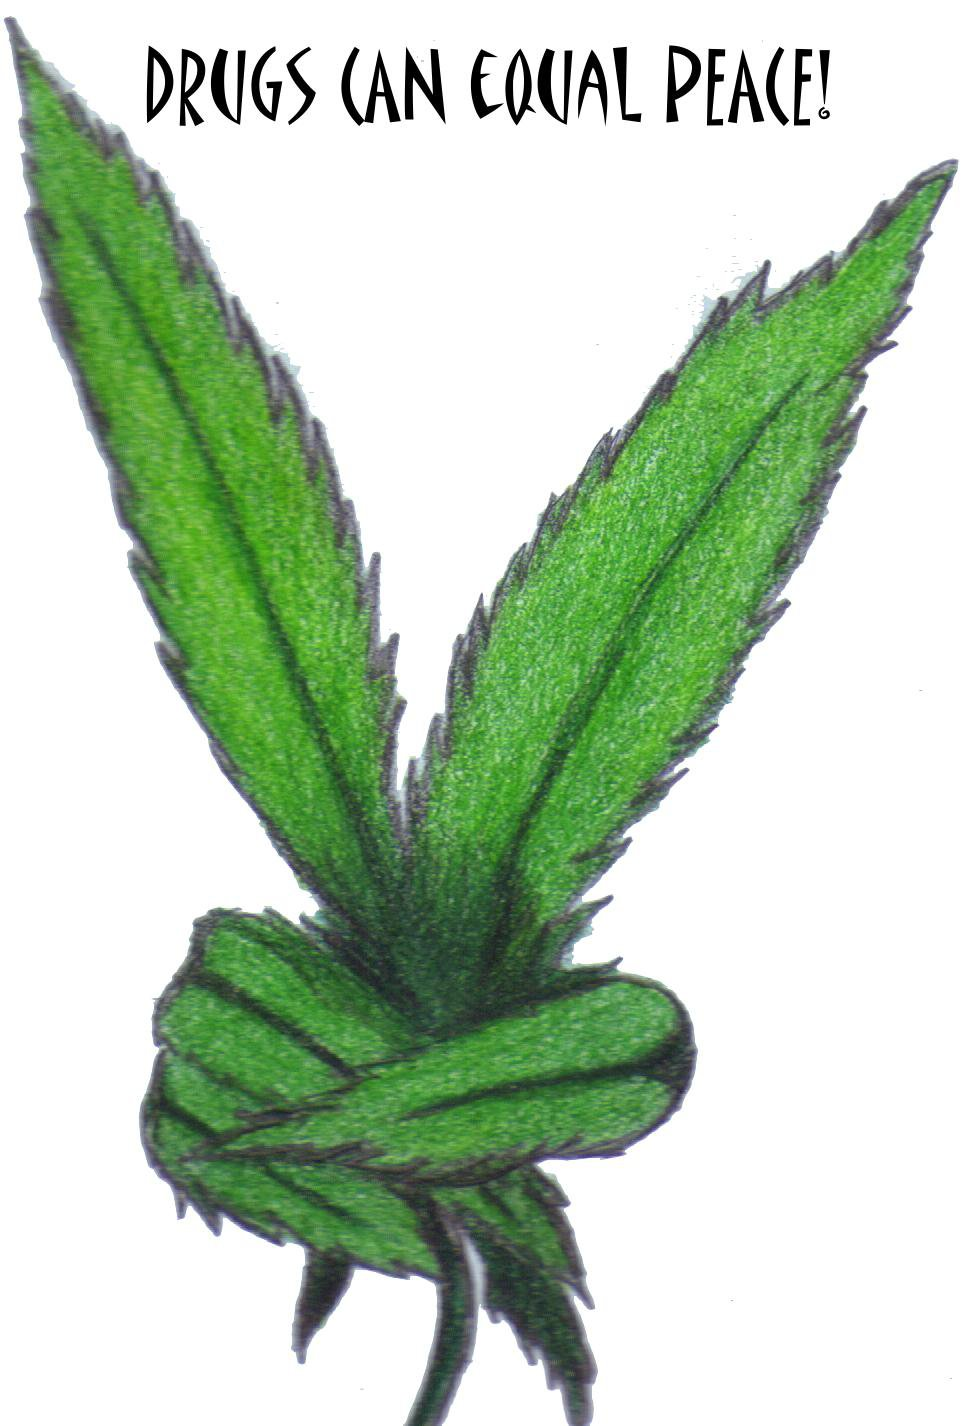 Peace Sign And Pot Leaf Tattoo Design in 2017: Real Photo ...